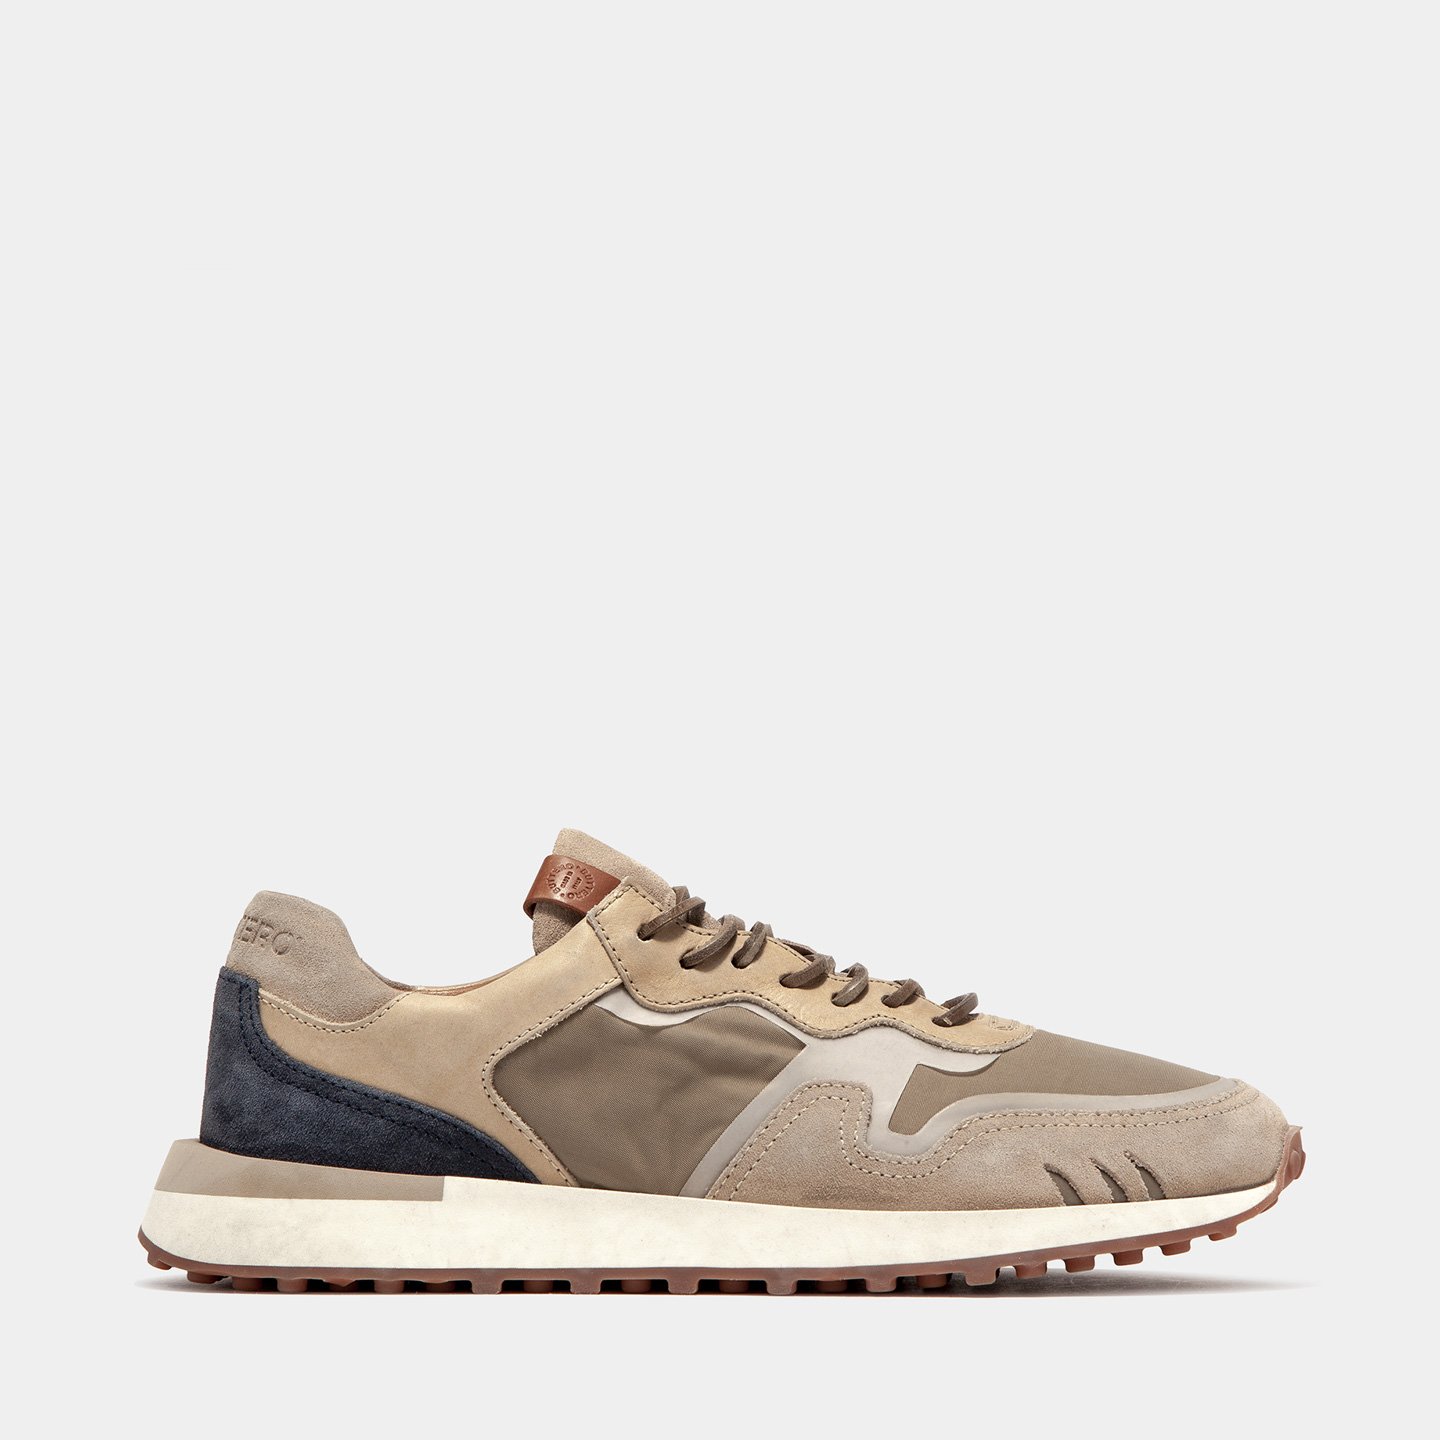 BUTTERO: FUTURA ISNEAKERS IN BEIGE NYLON AND MIXED LEATHER